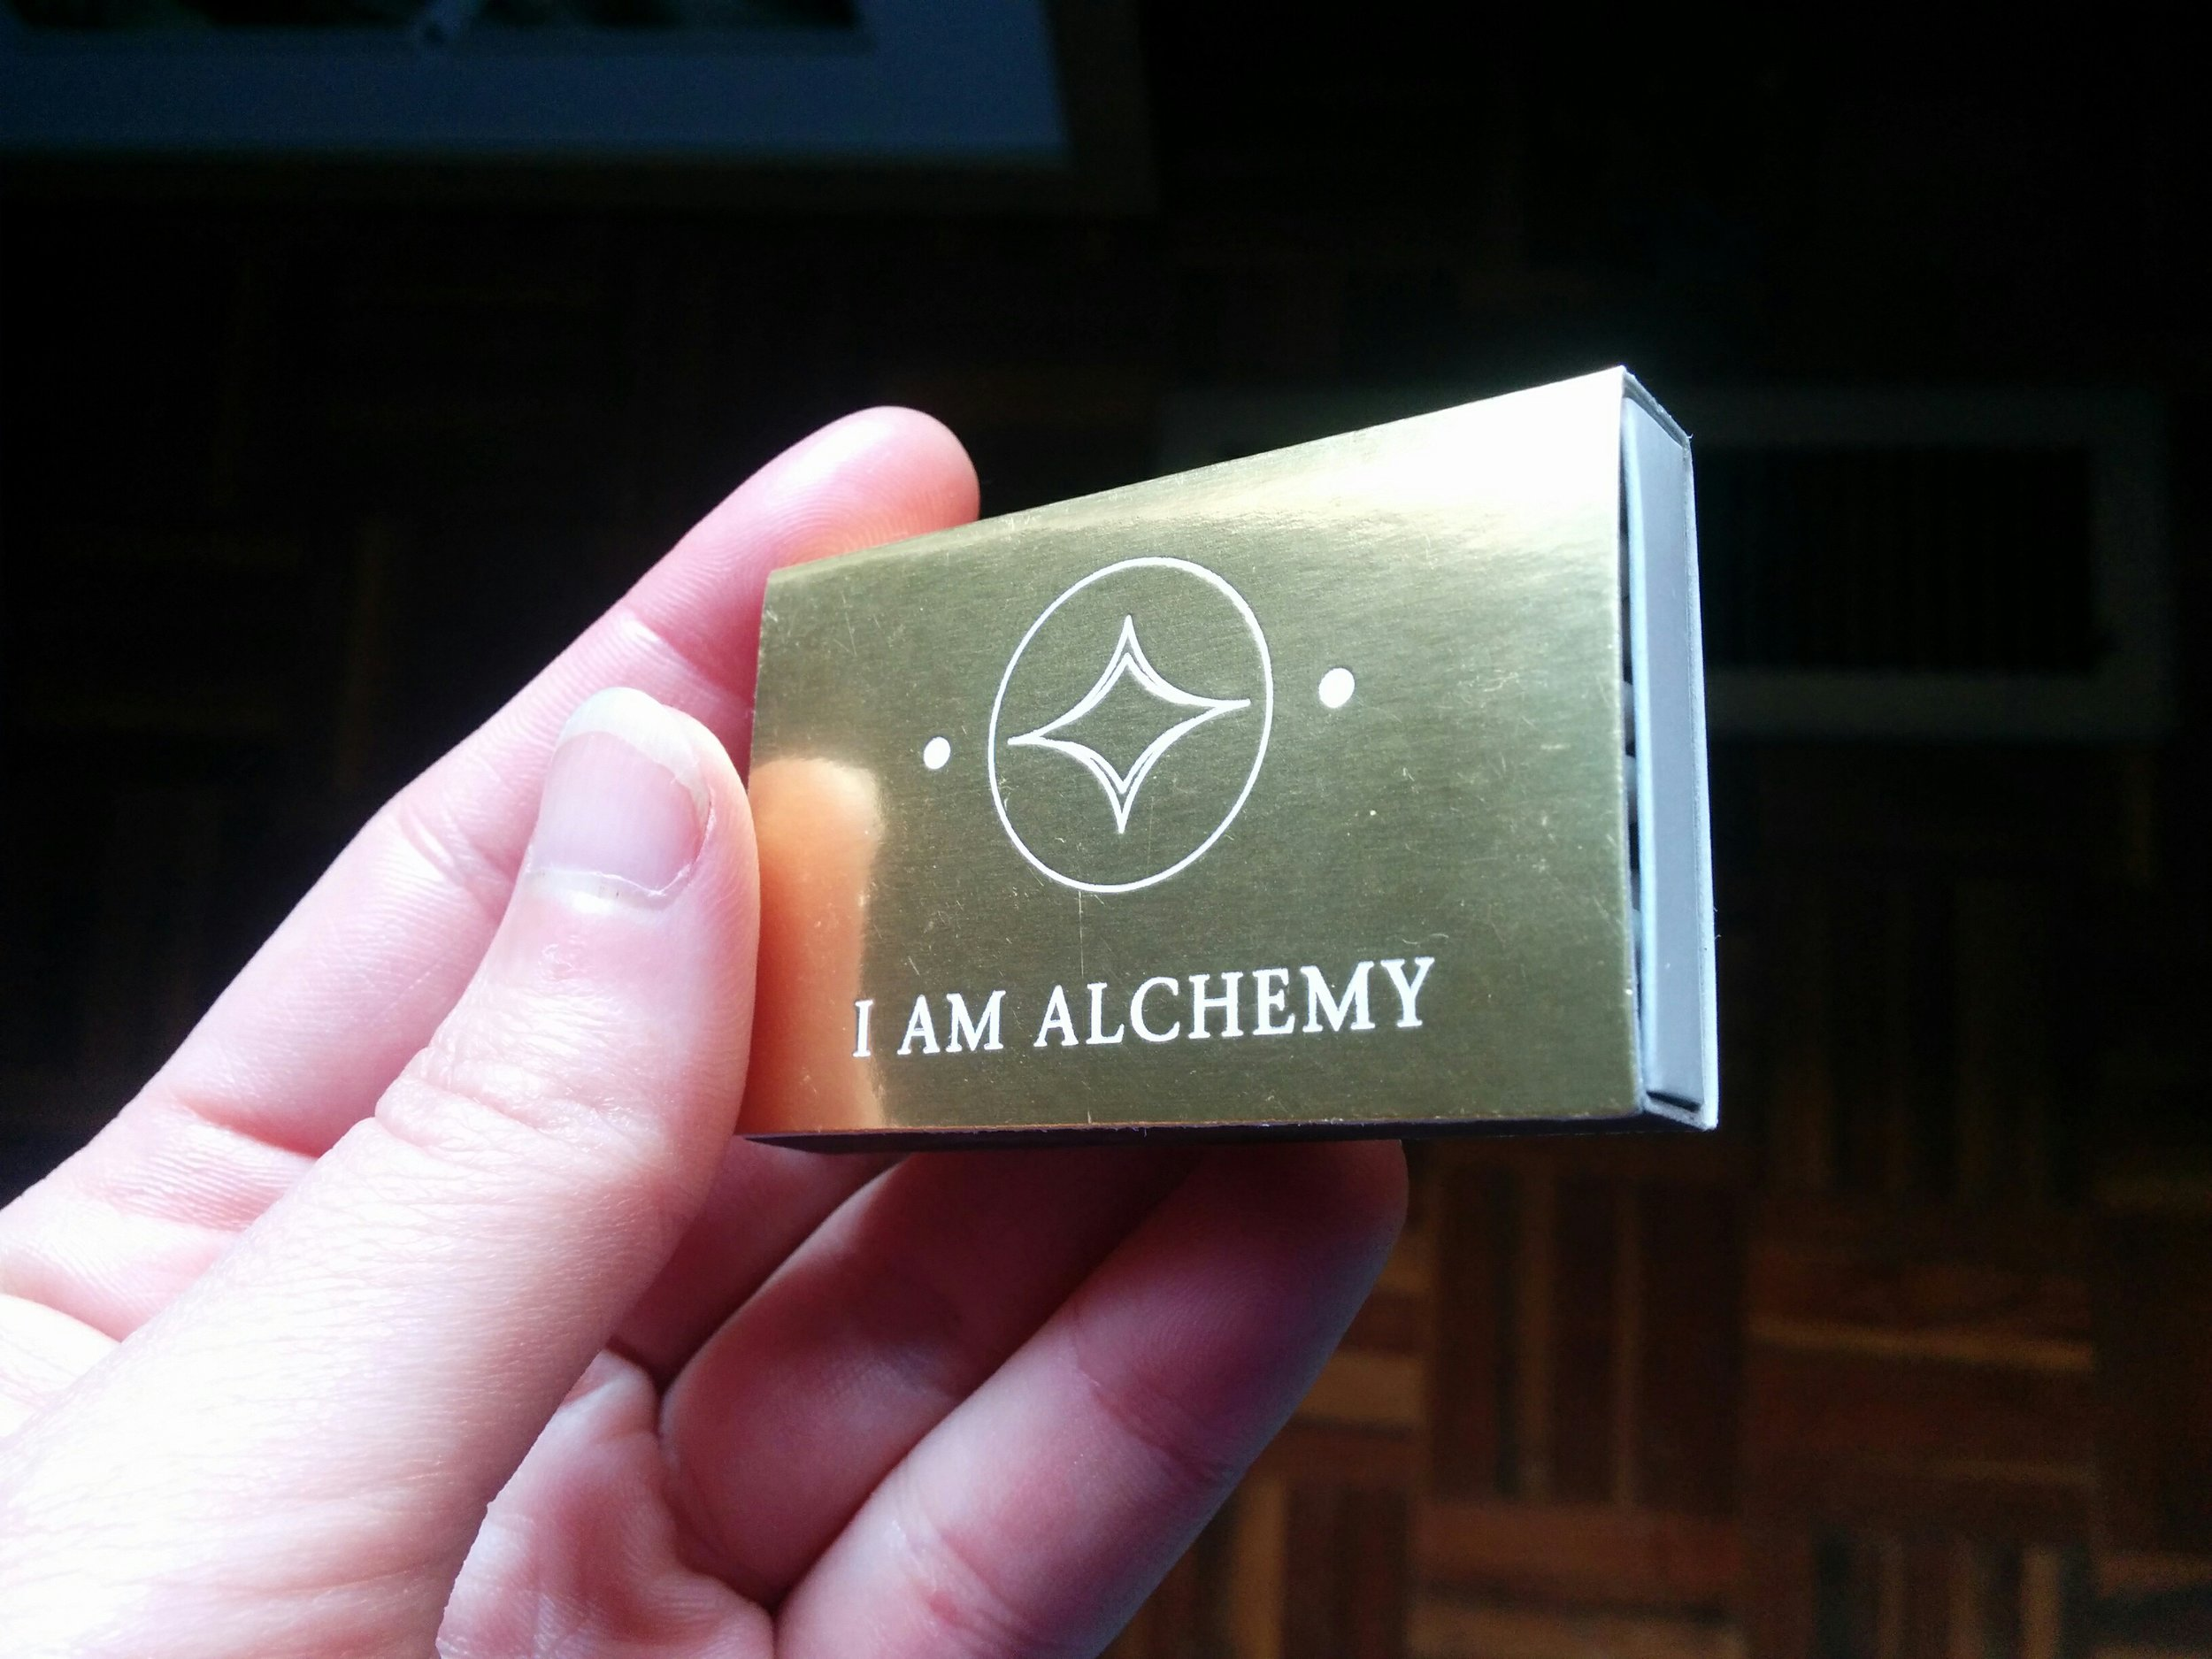 I AM Alchemy